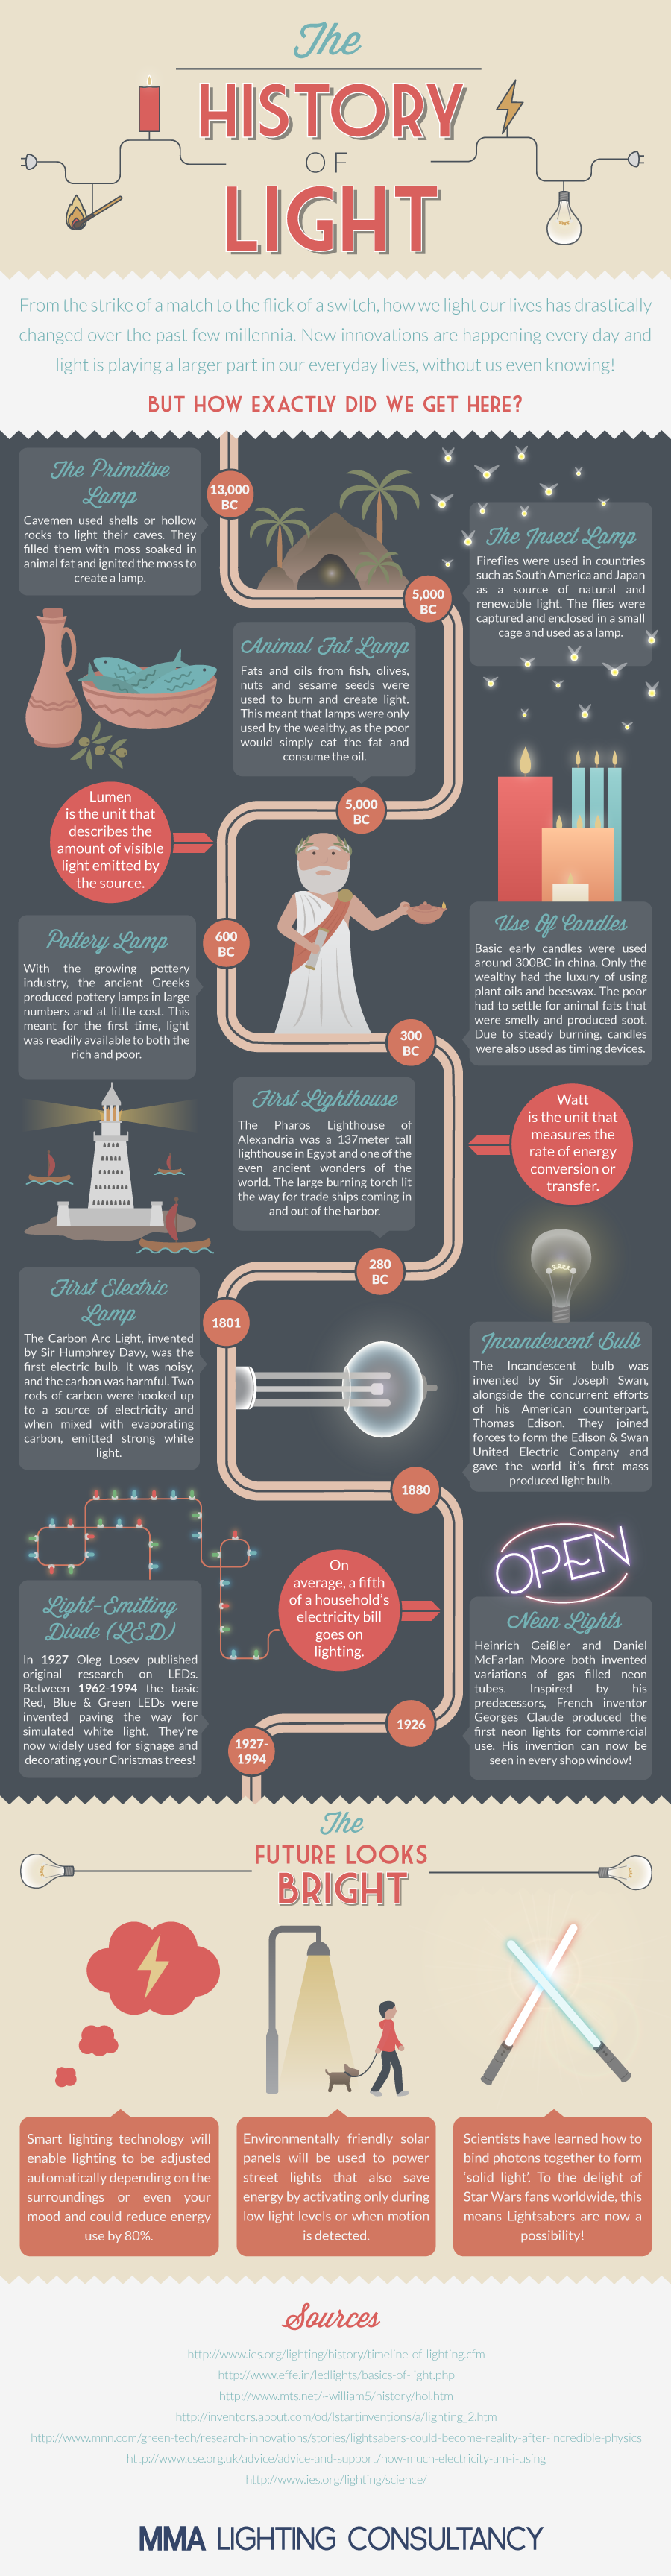 The History of Light